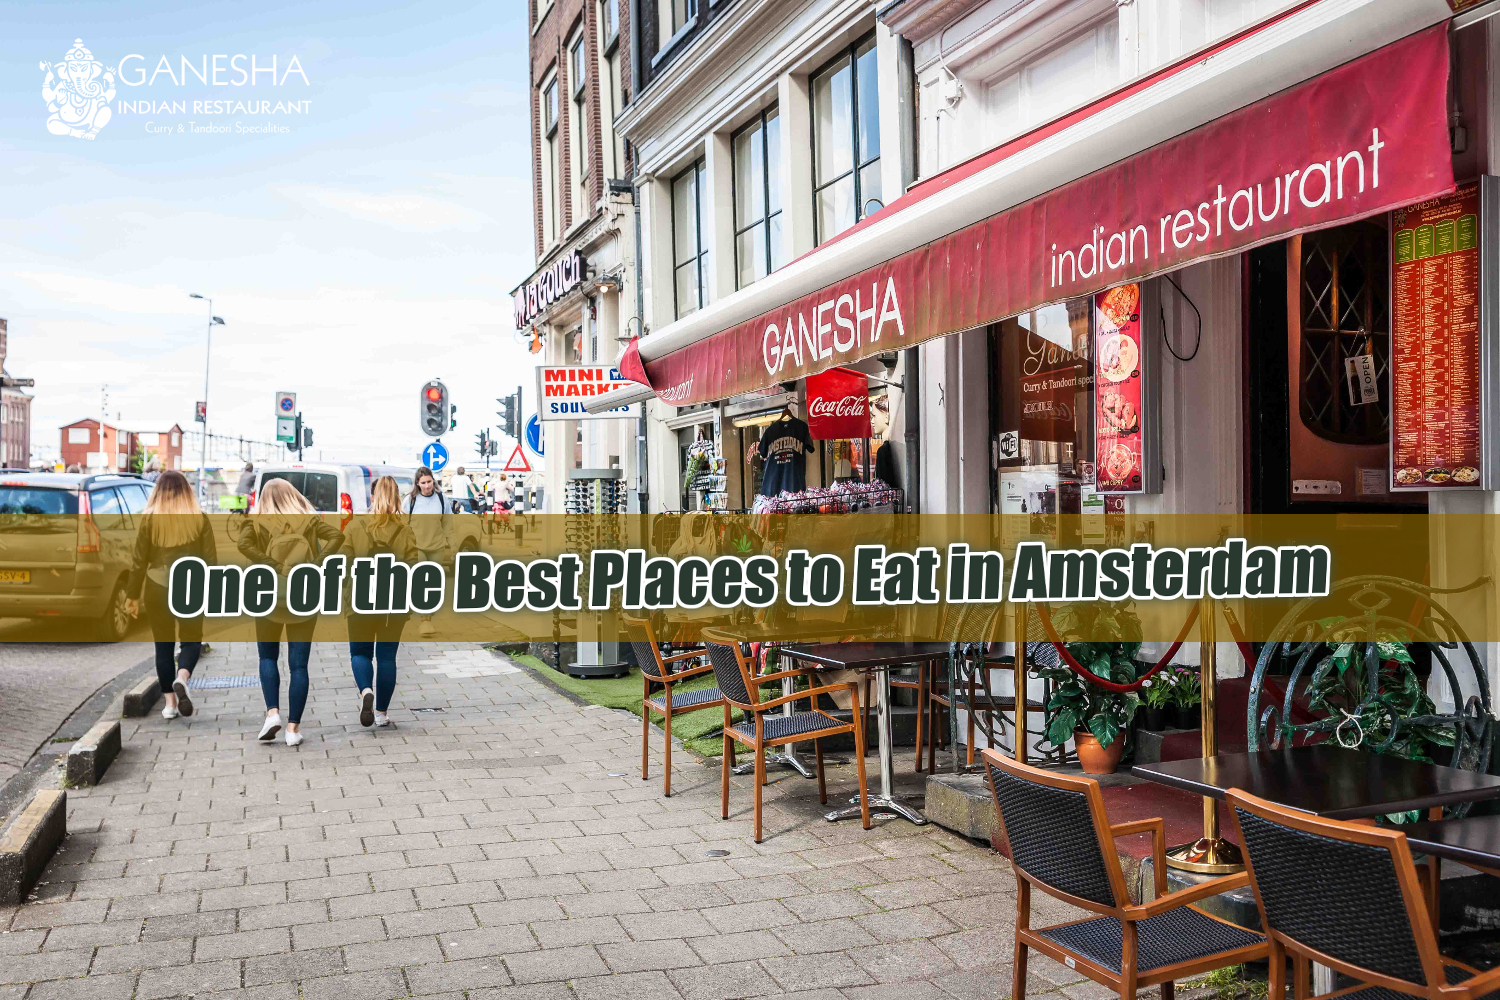 One-of-the-Best-Places-to-Eat-in-amsterdam